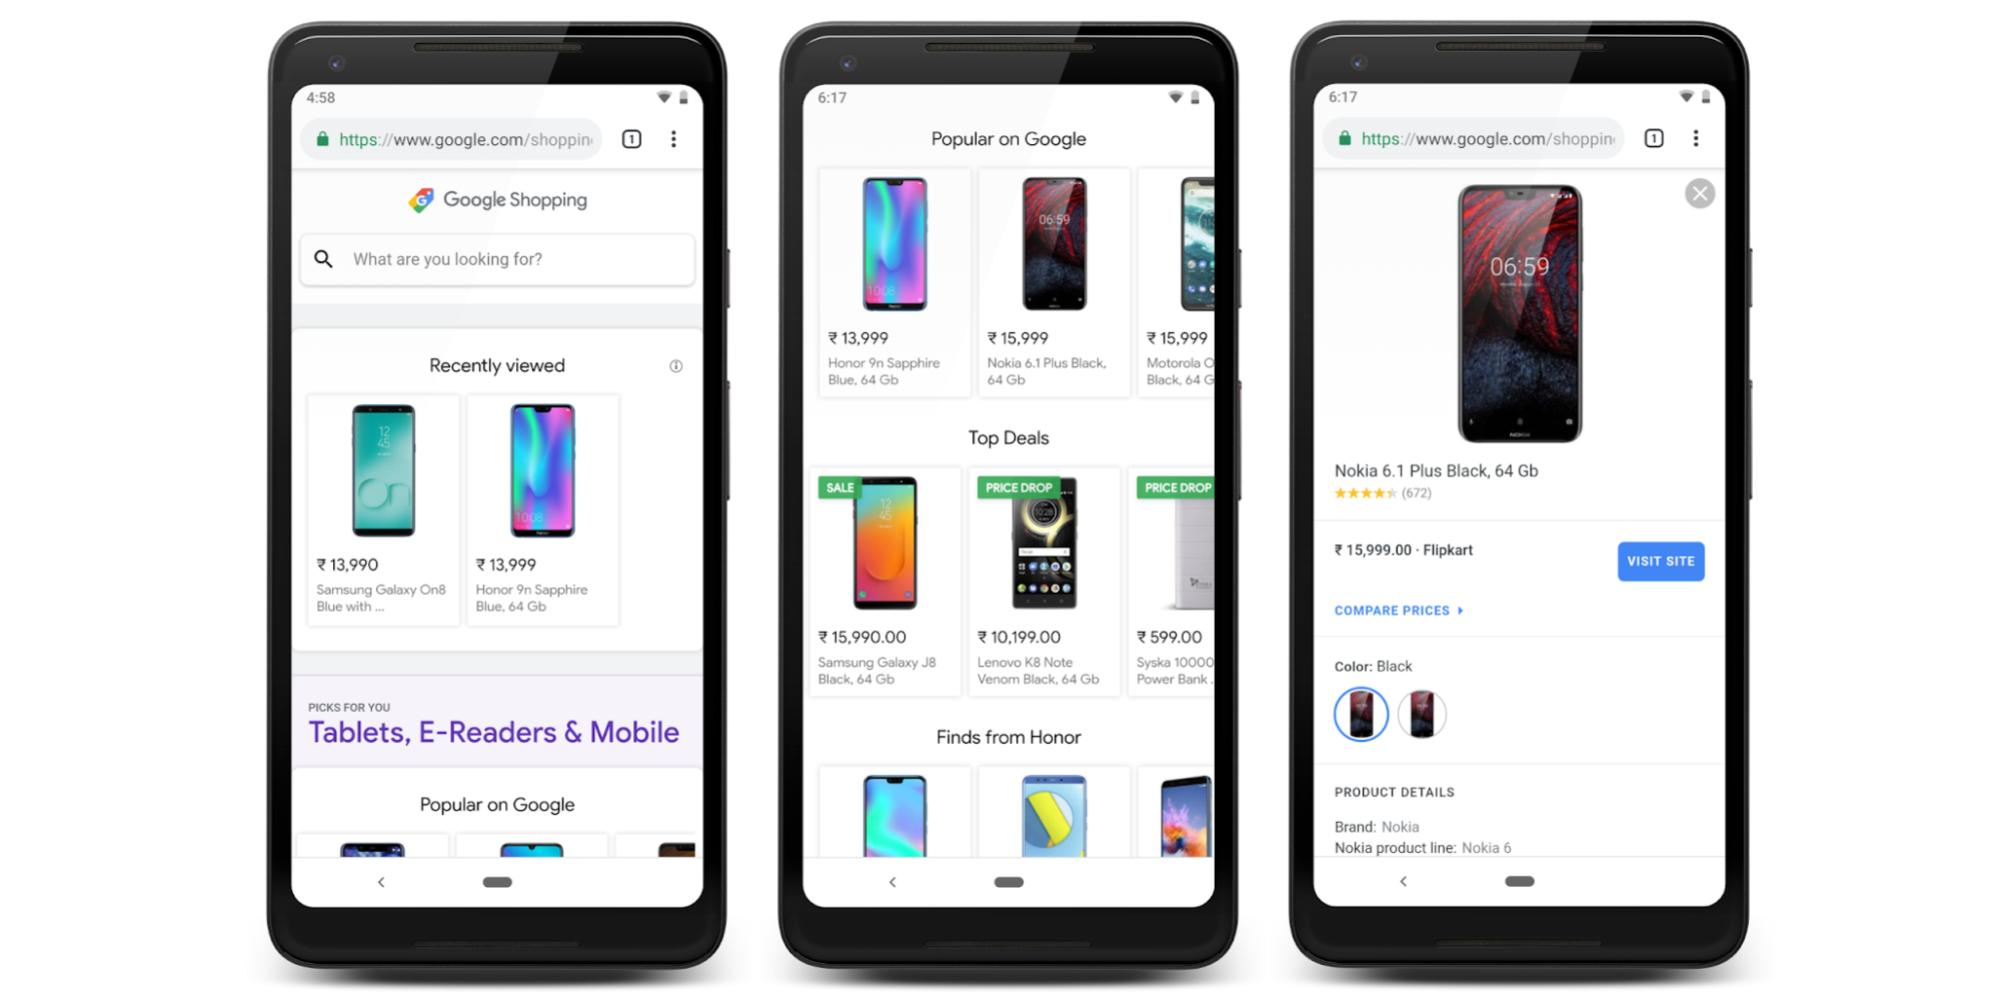 Google Shopping gets new home page w/ Picks for you, Top deals, & price alerts, starting in India